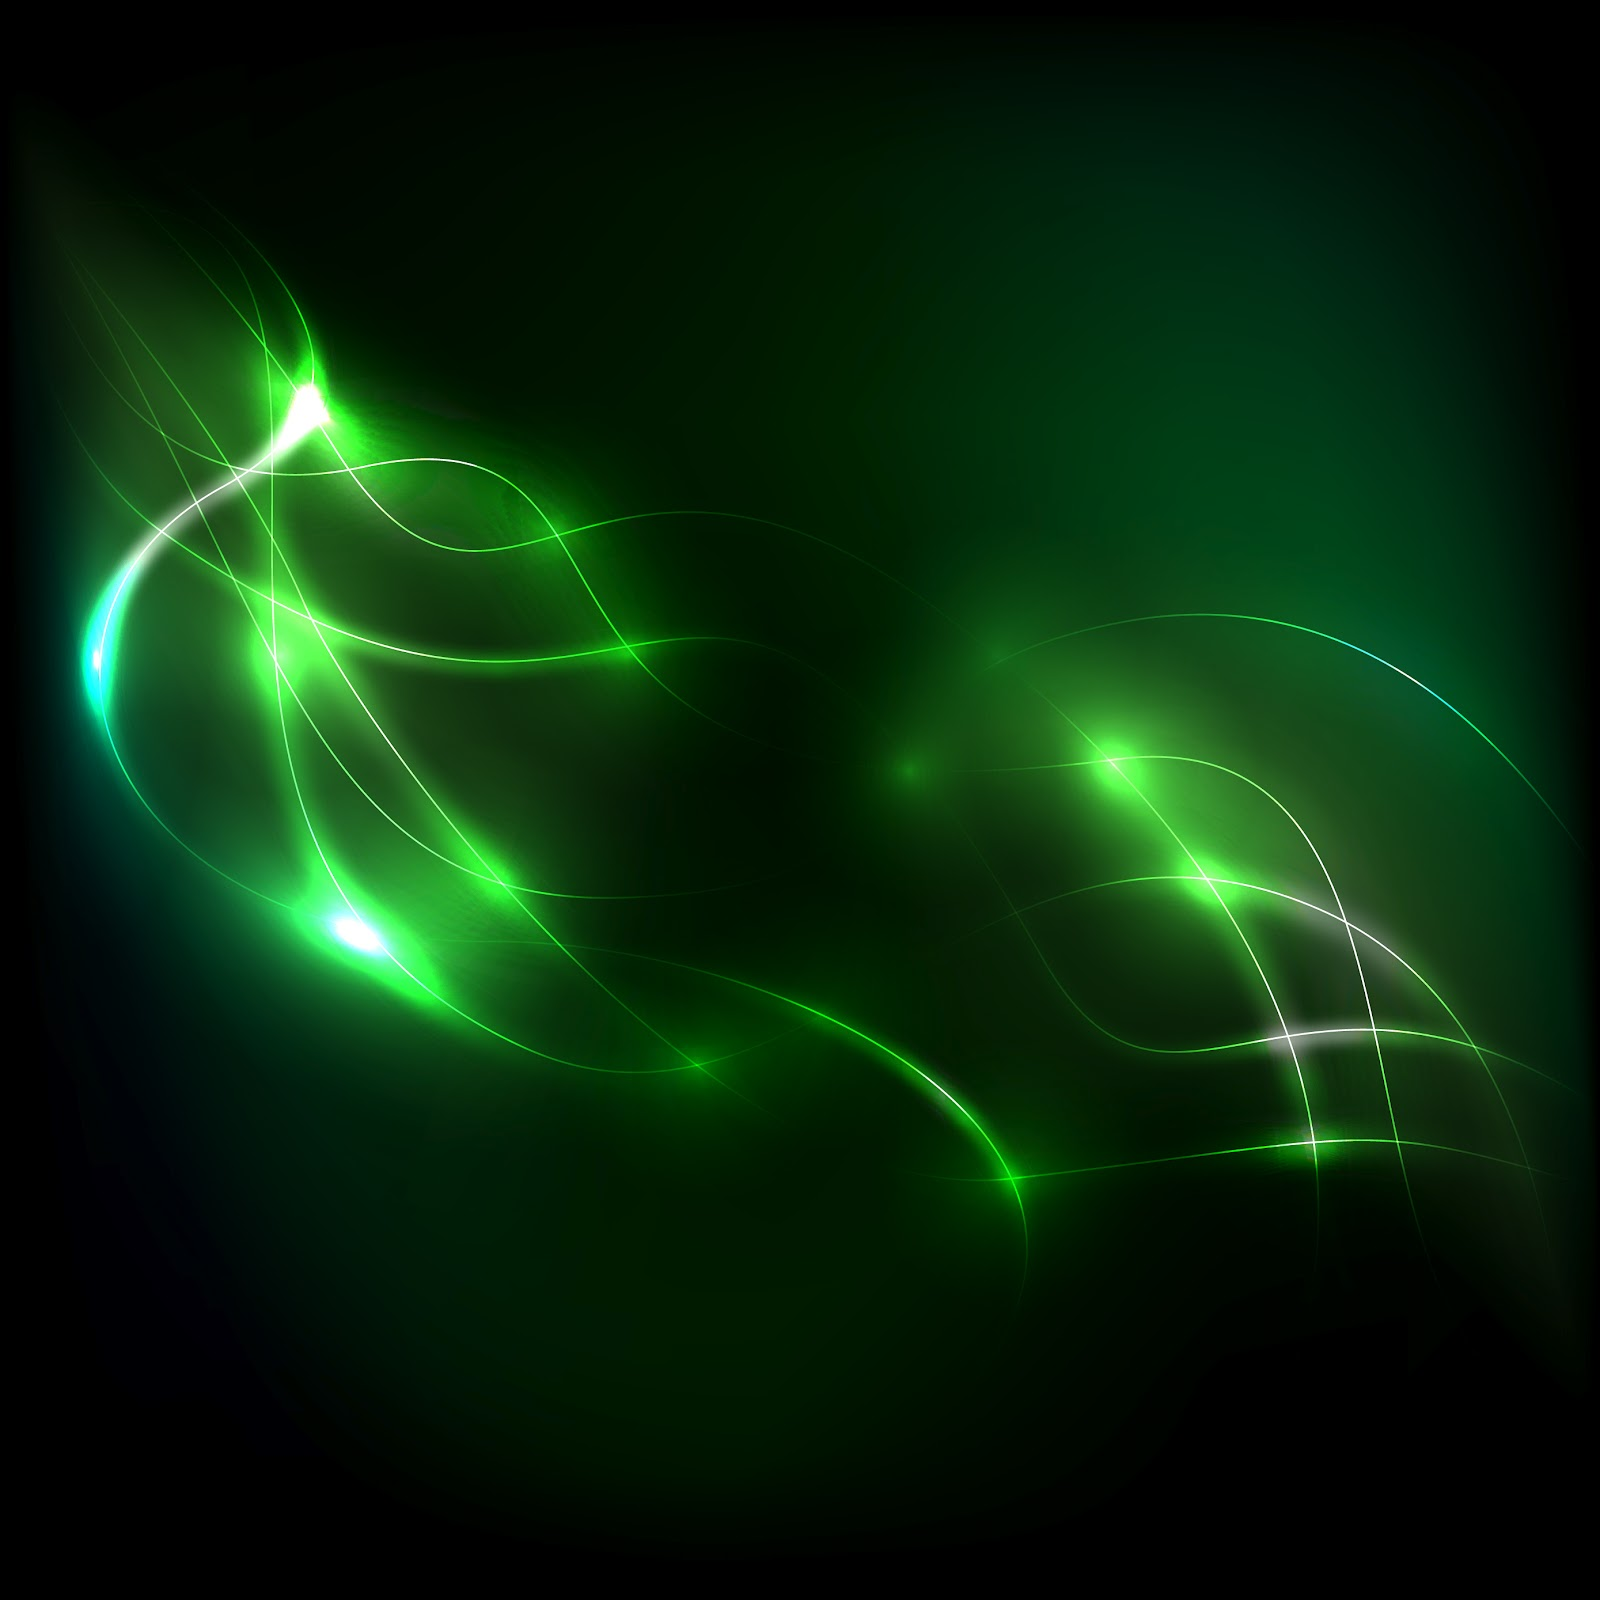 Green Background Widescreen HD